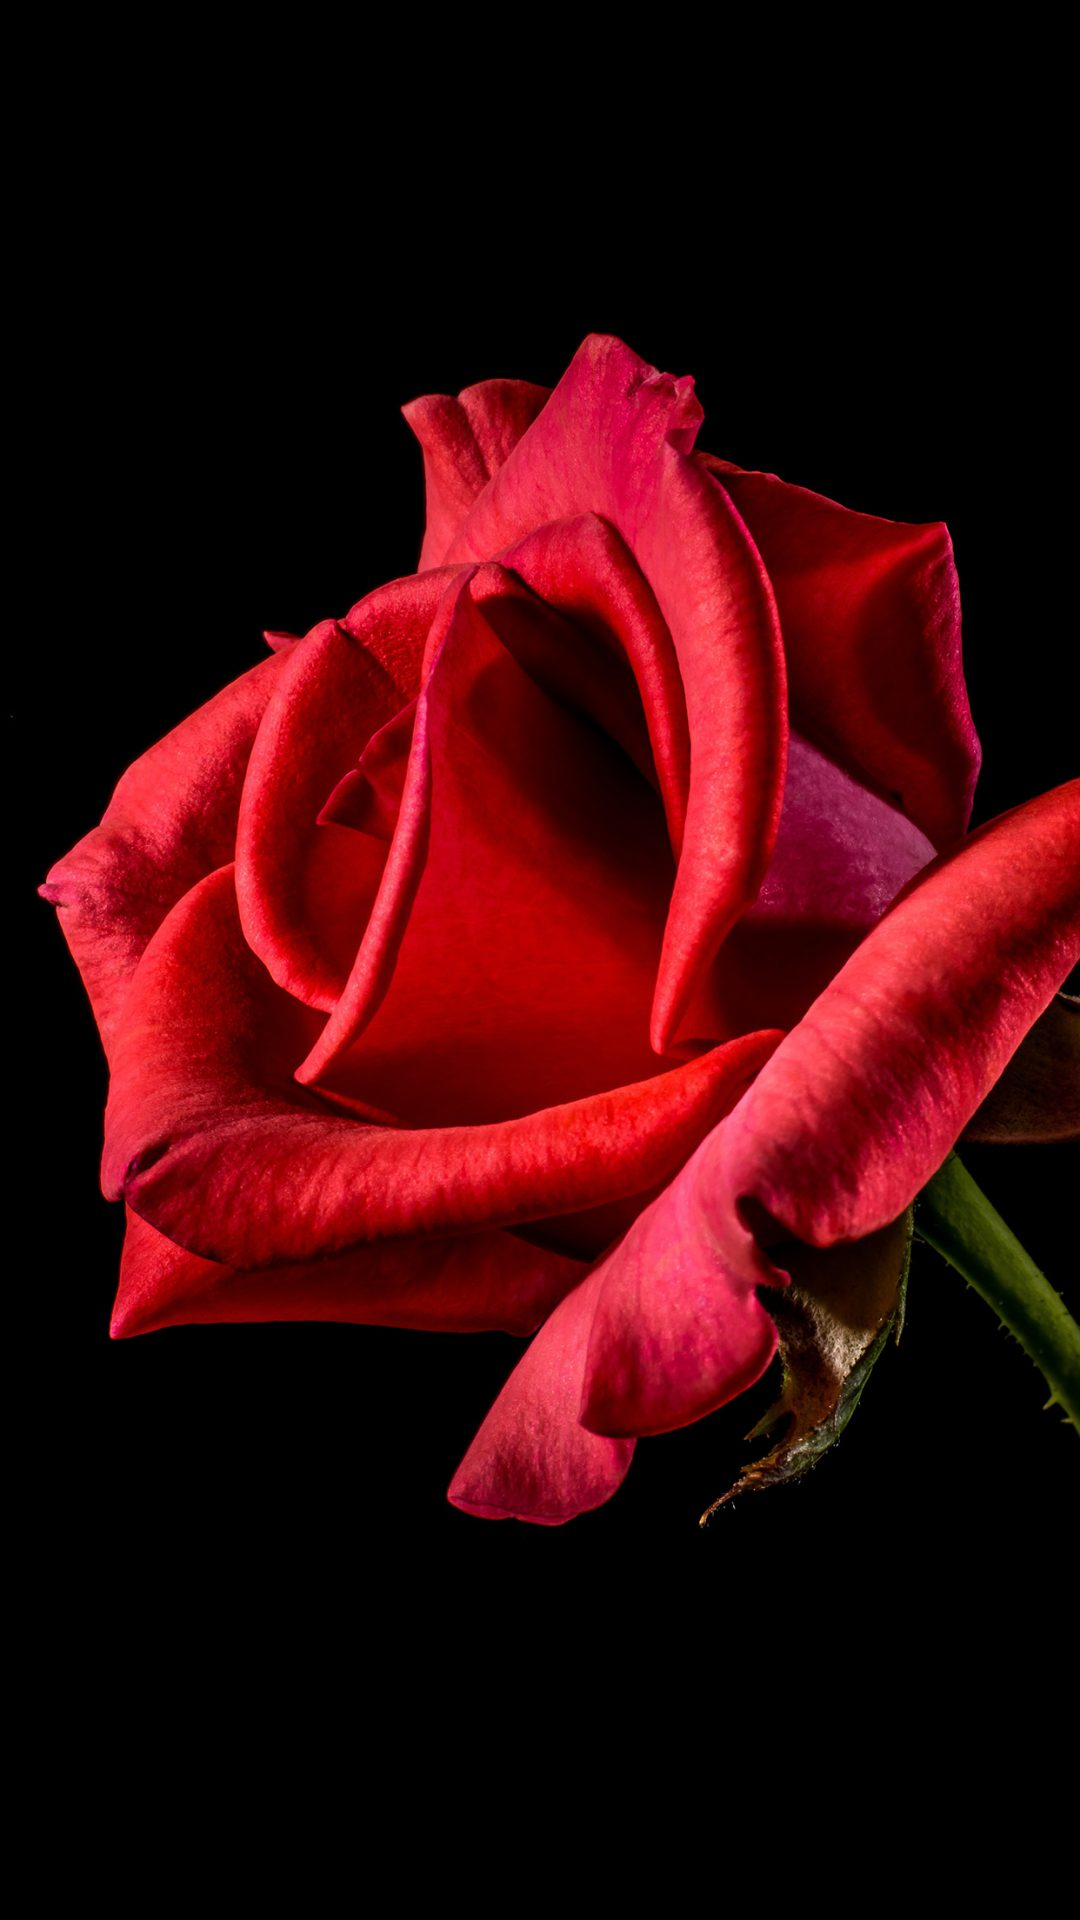 Flower Rose Red Dark Beautiful Best Nature